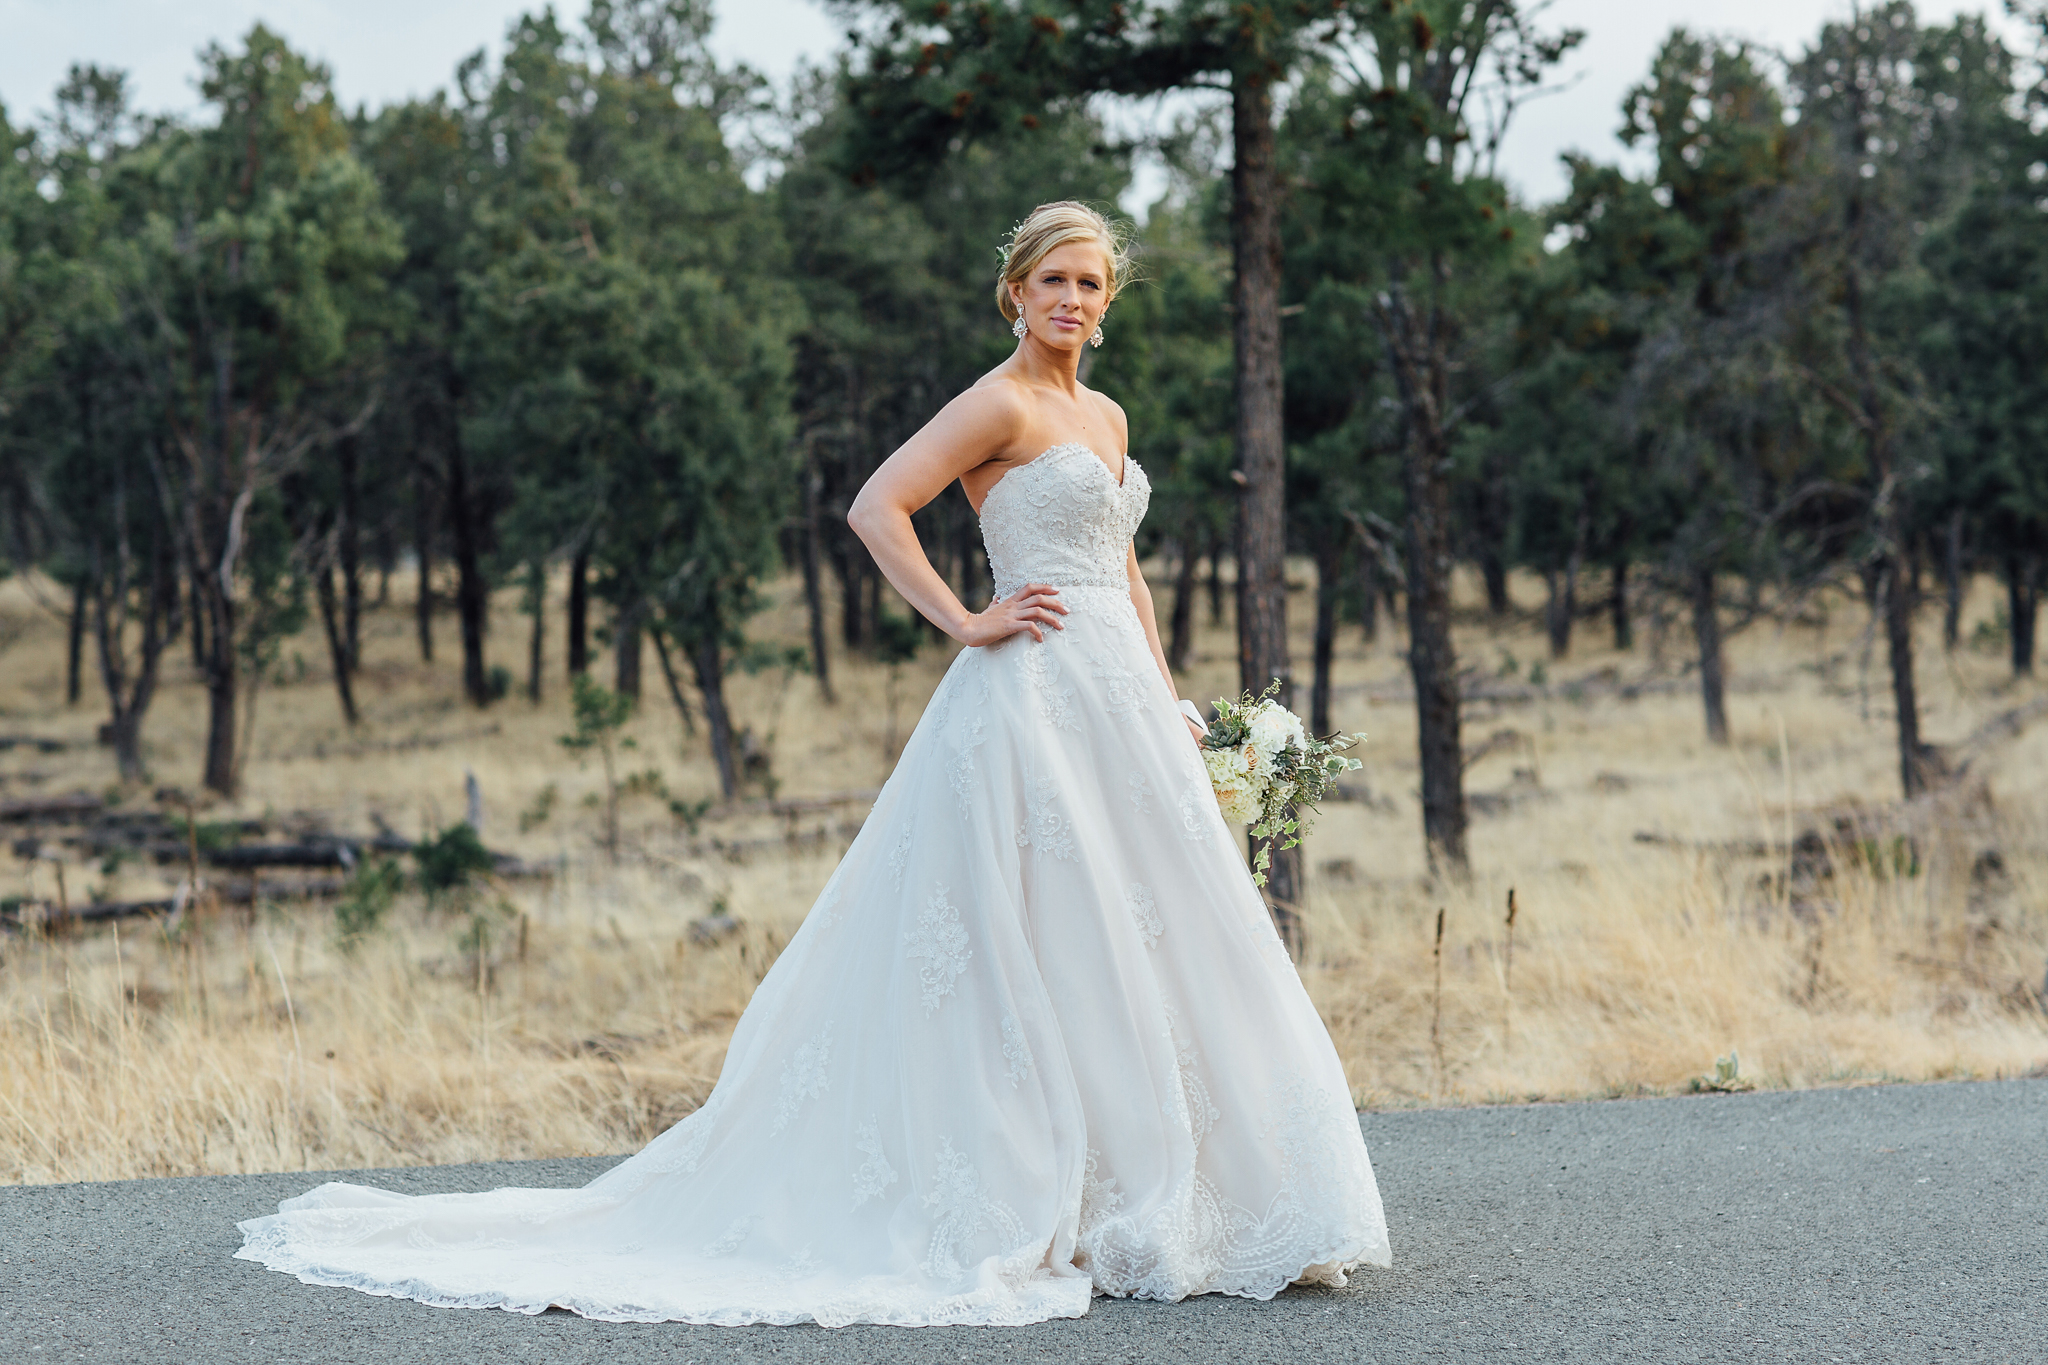 Ruidoso Wedding Photography-25.jpg